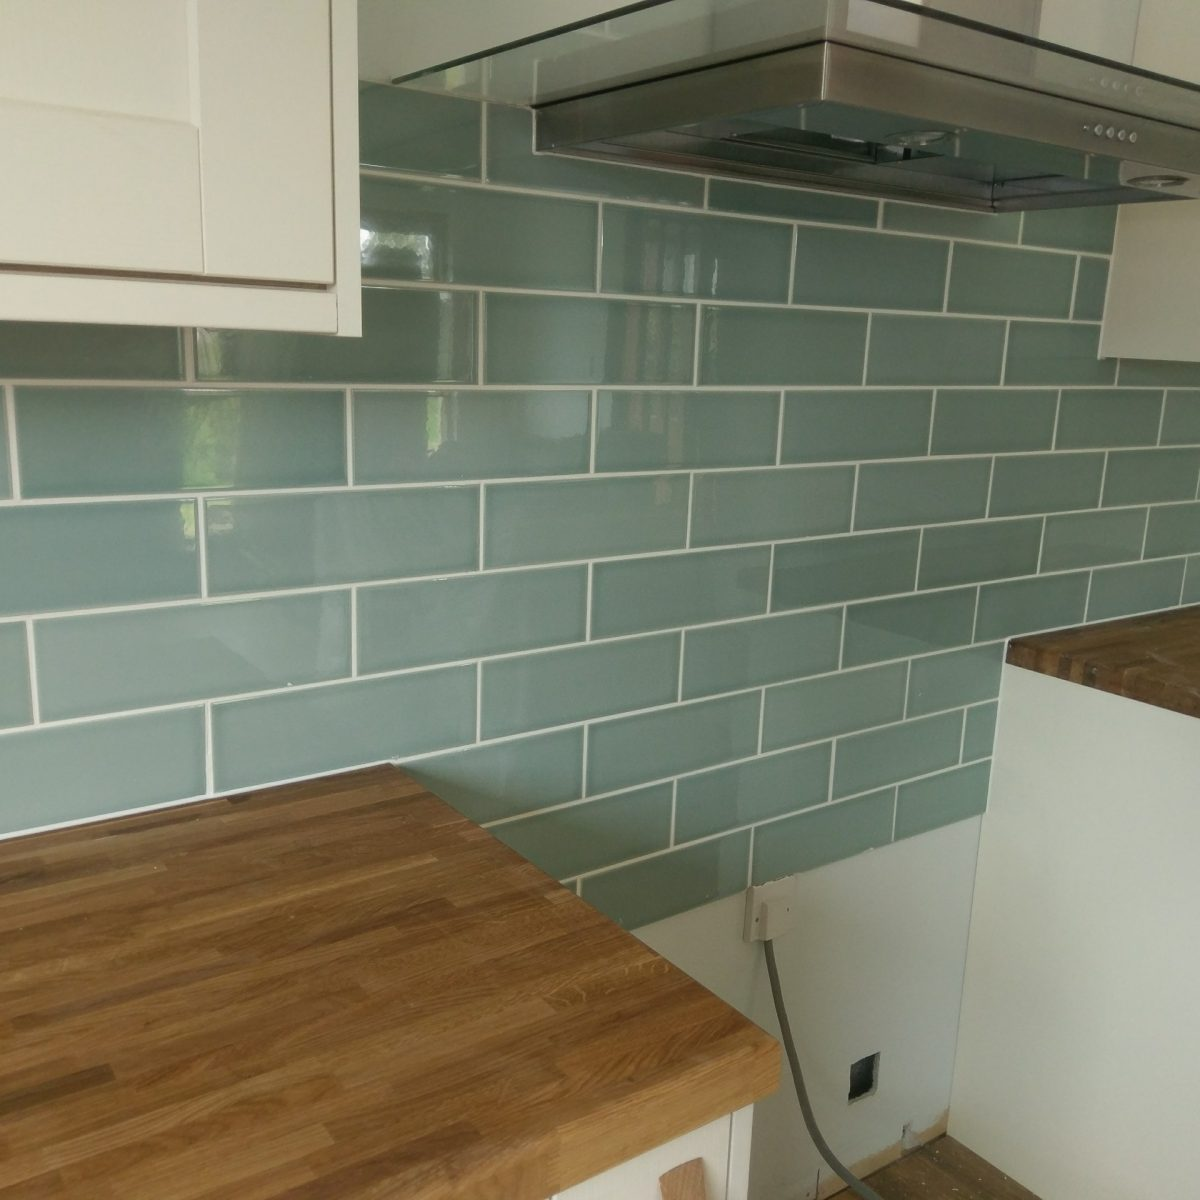 Bathroom wet wall and kitchen tiling